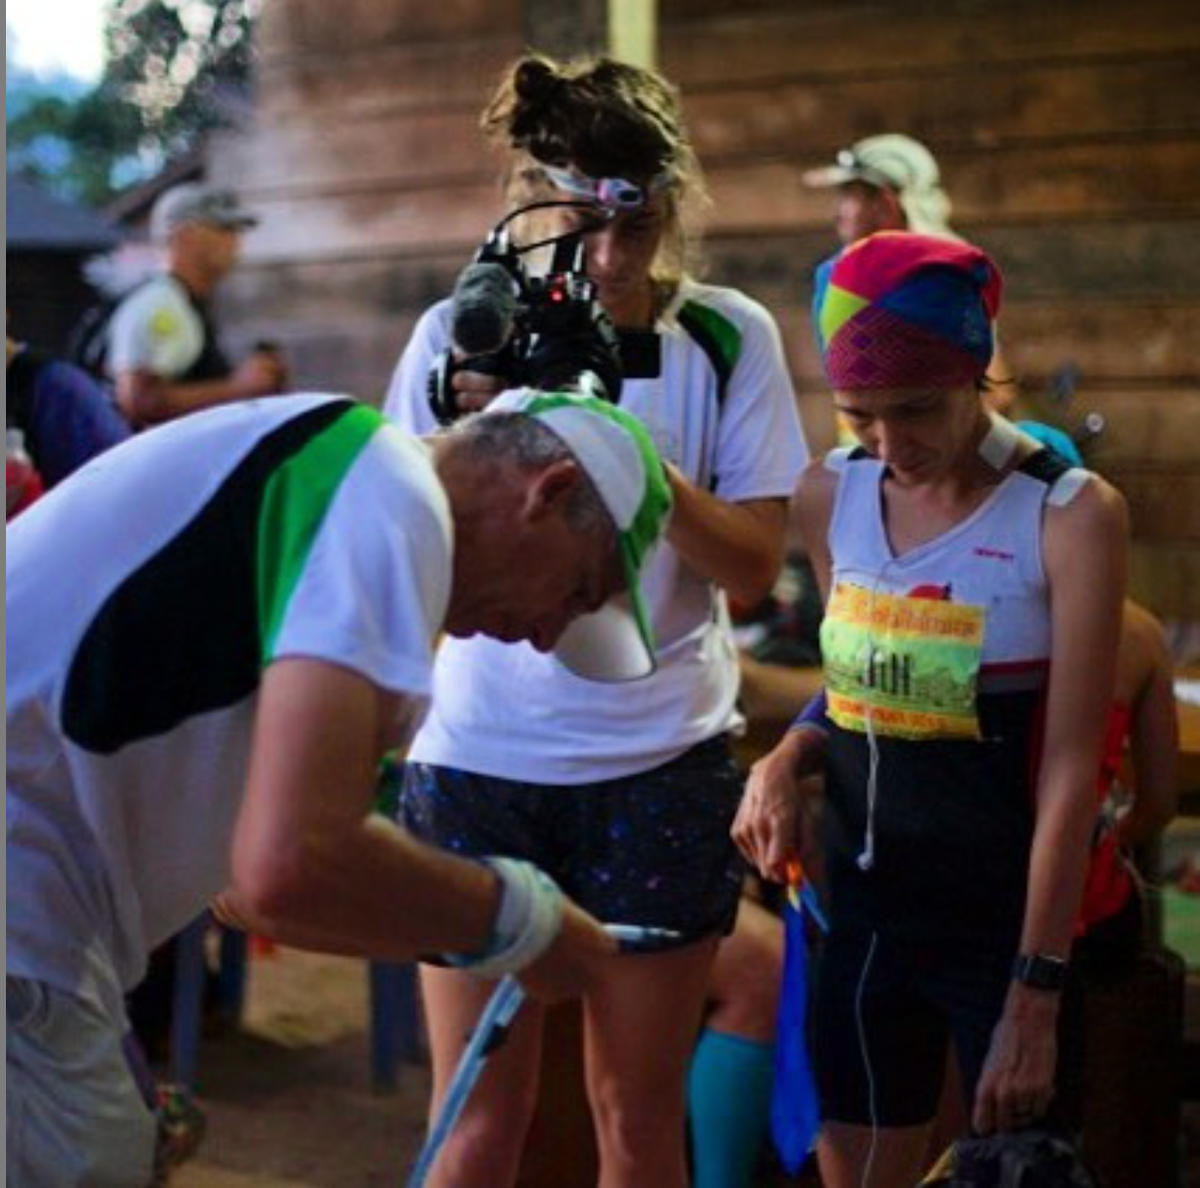 Filming Ultra -Marathons across the pacific.